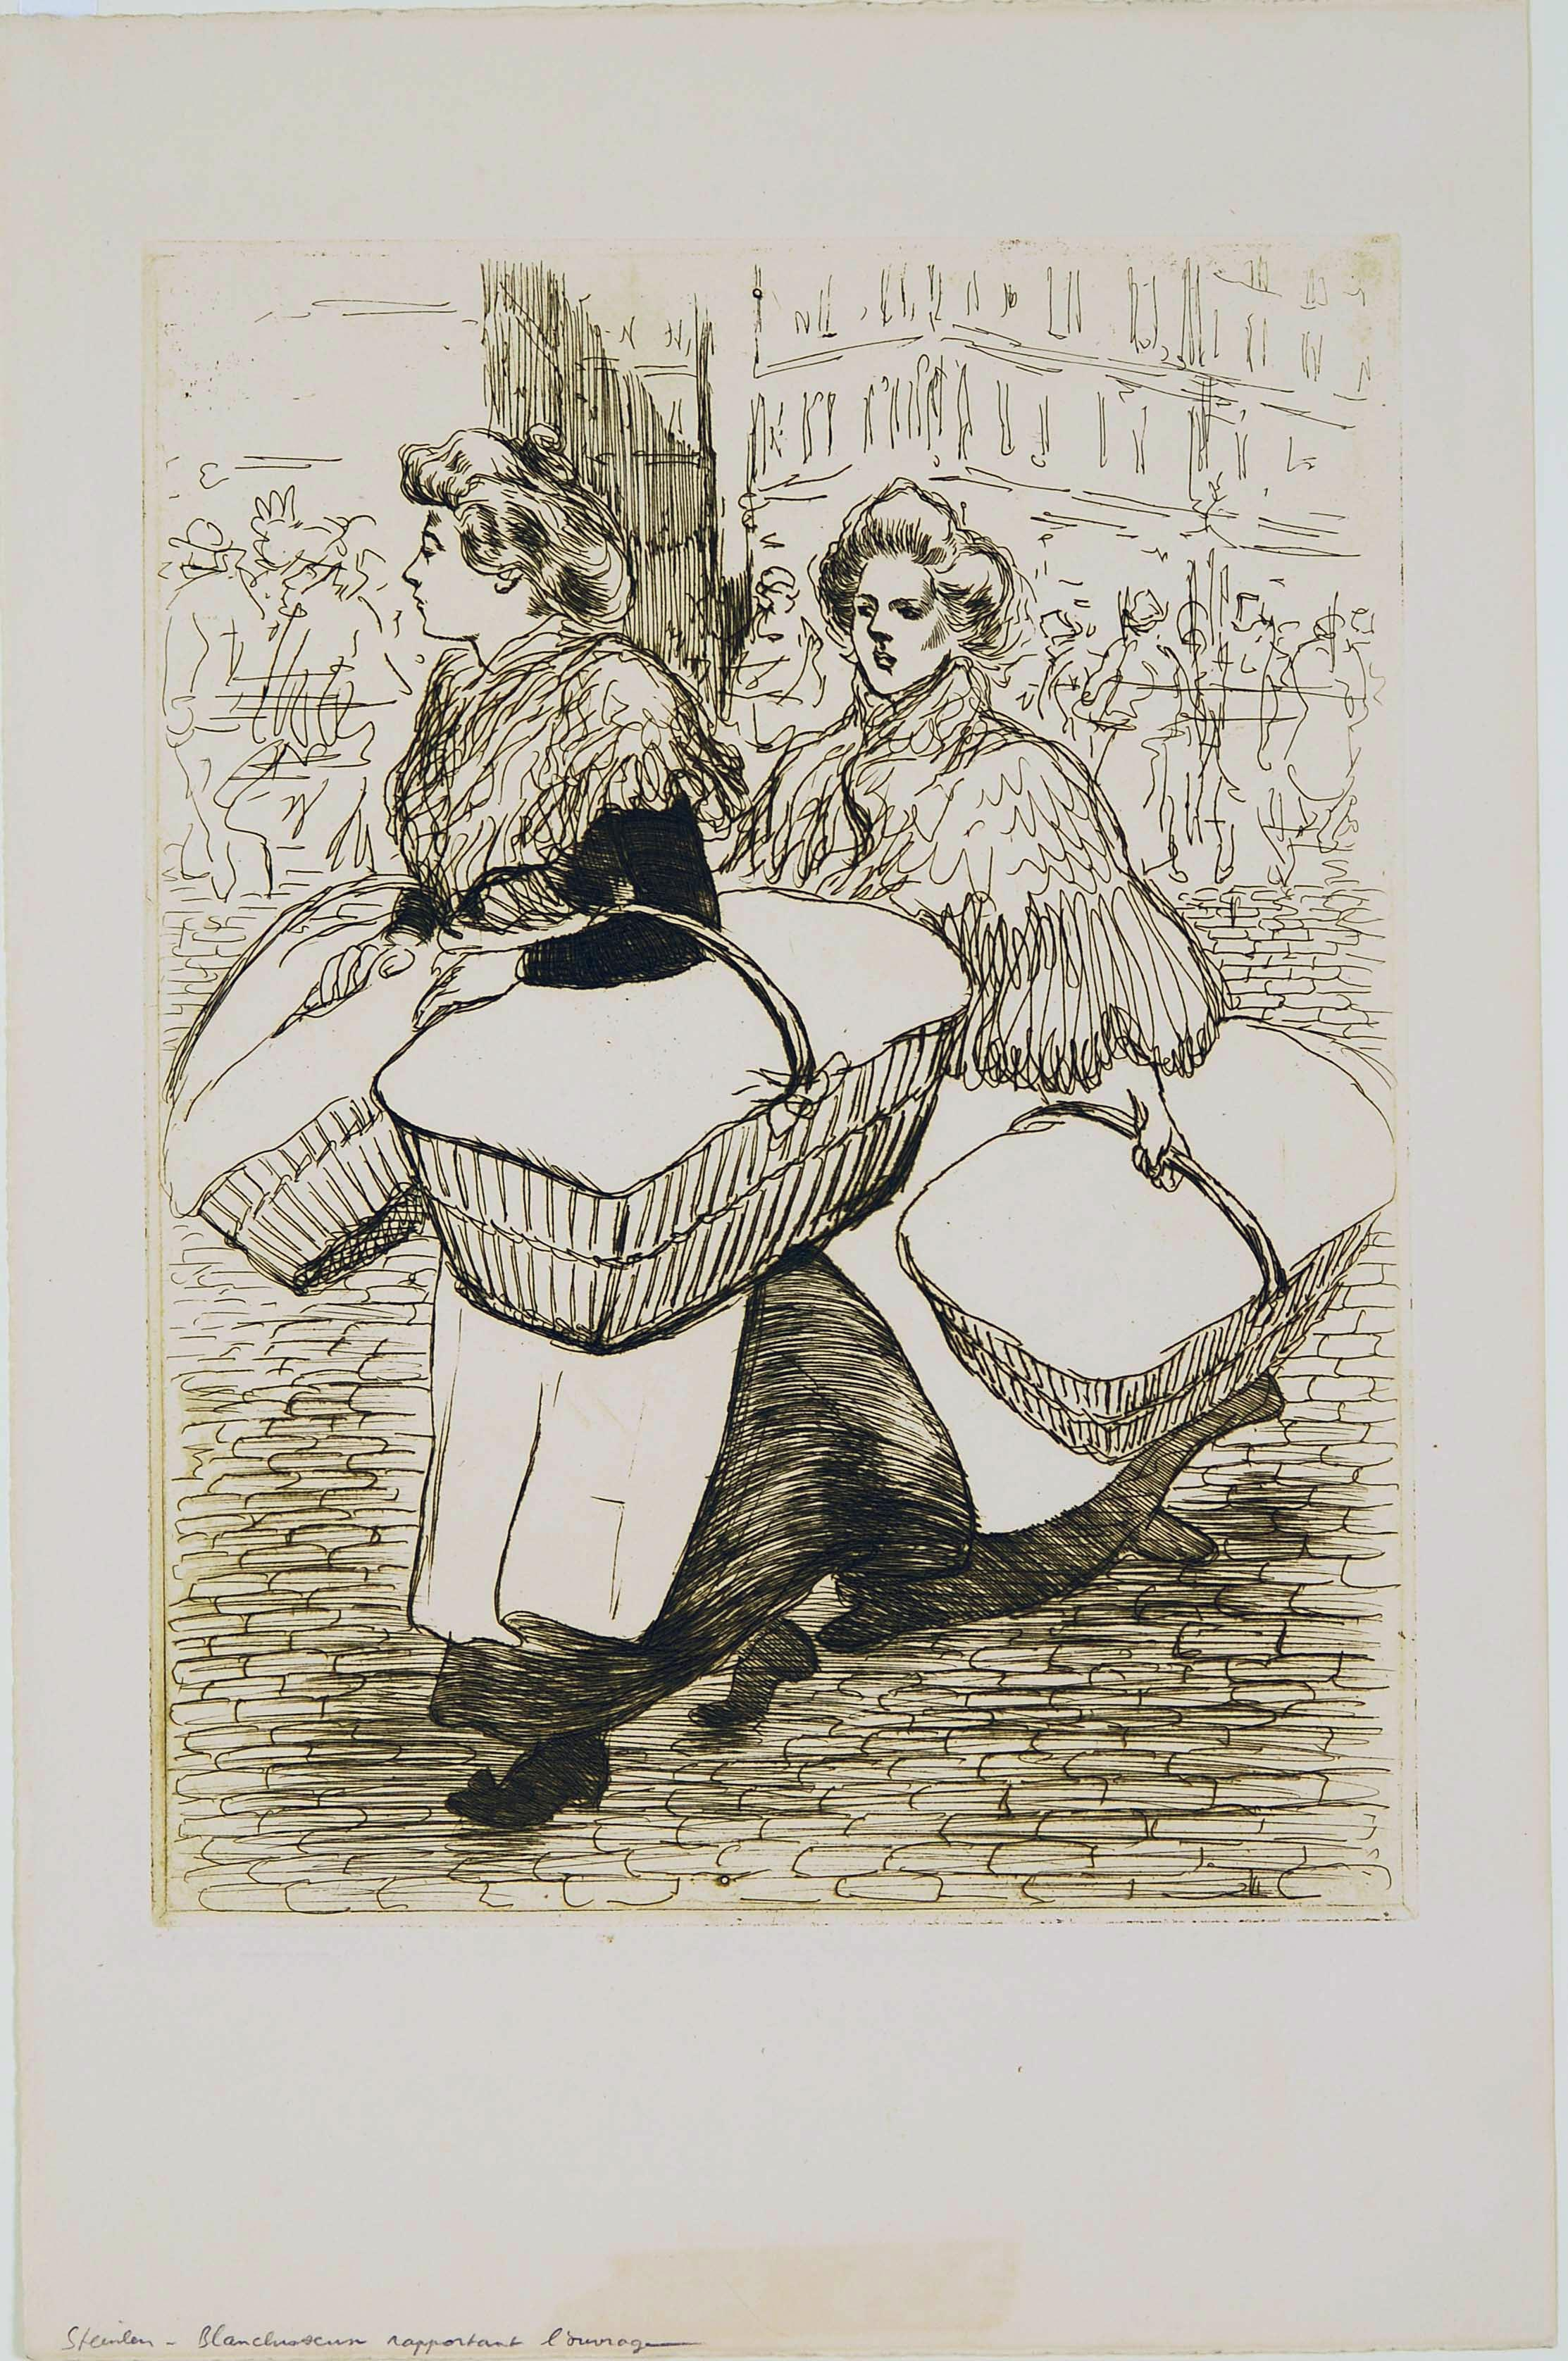 Théophile Alexandre Steinlen, Laundresses Carrying Back their Work, May 1898